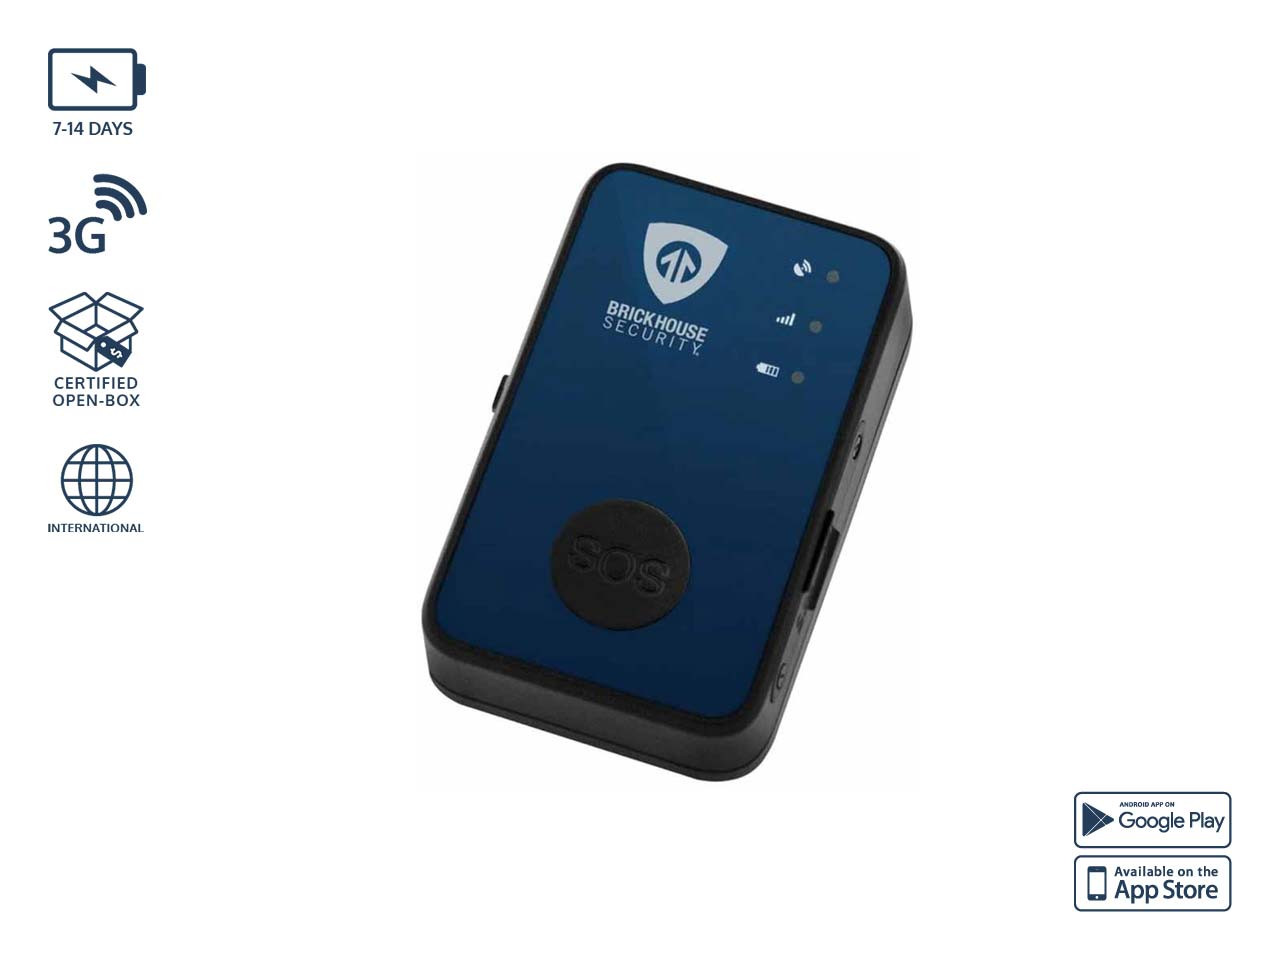 Gps Tracker Spark Nano International Open Box